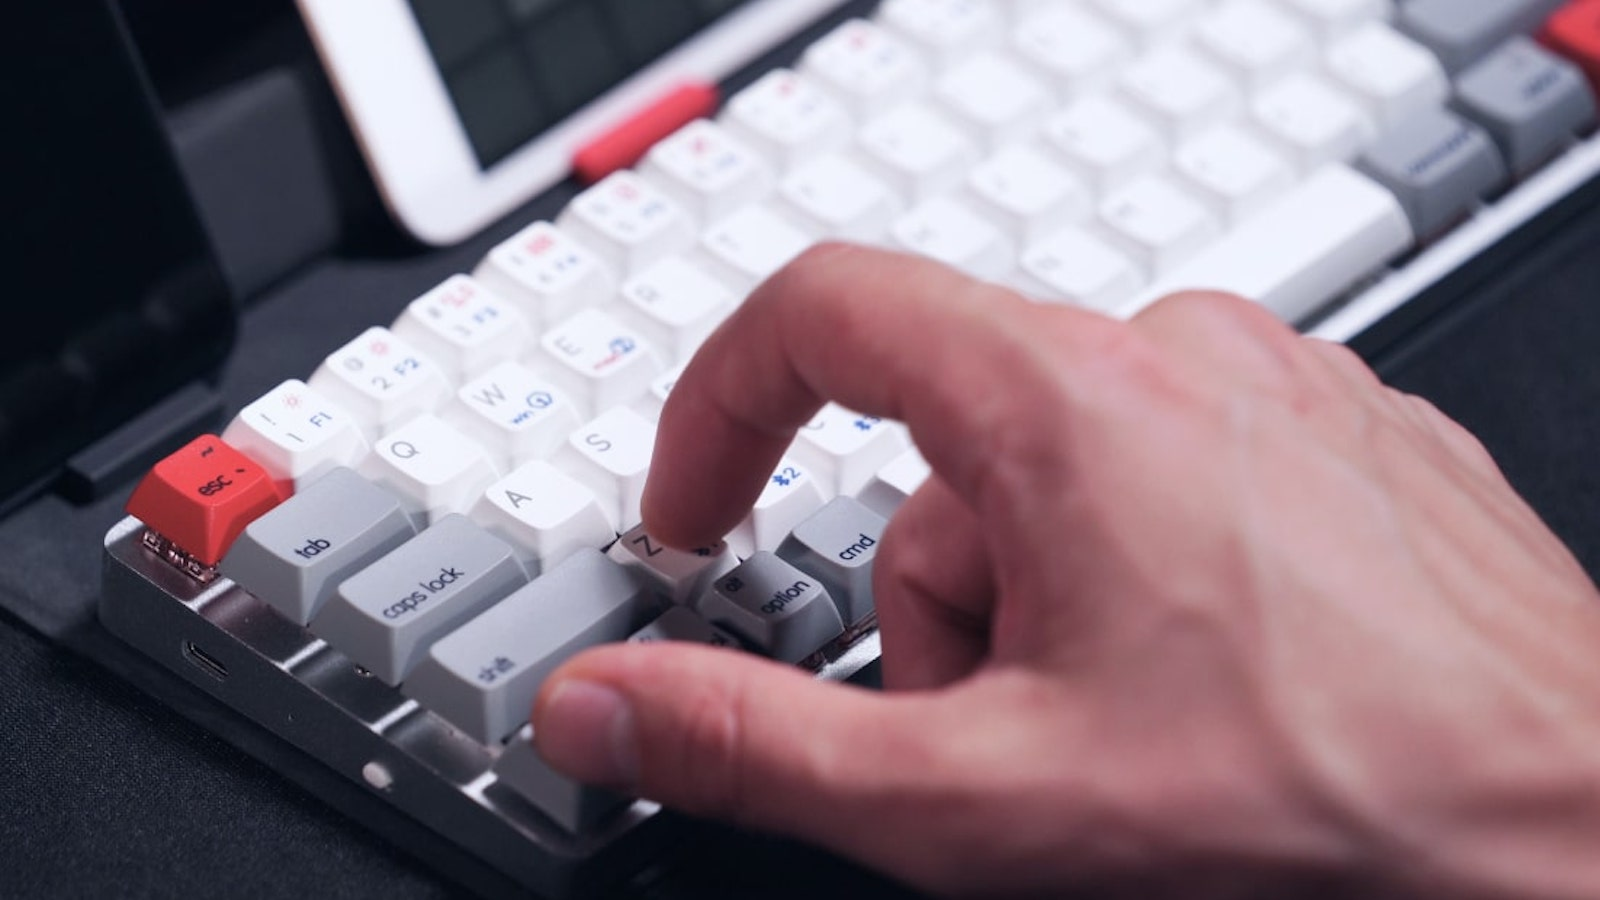 This adjustable wireless keyboard has mechanical switches and an ergonomic design